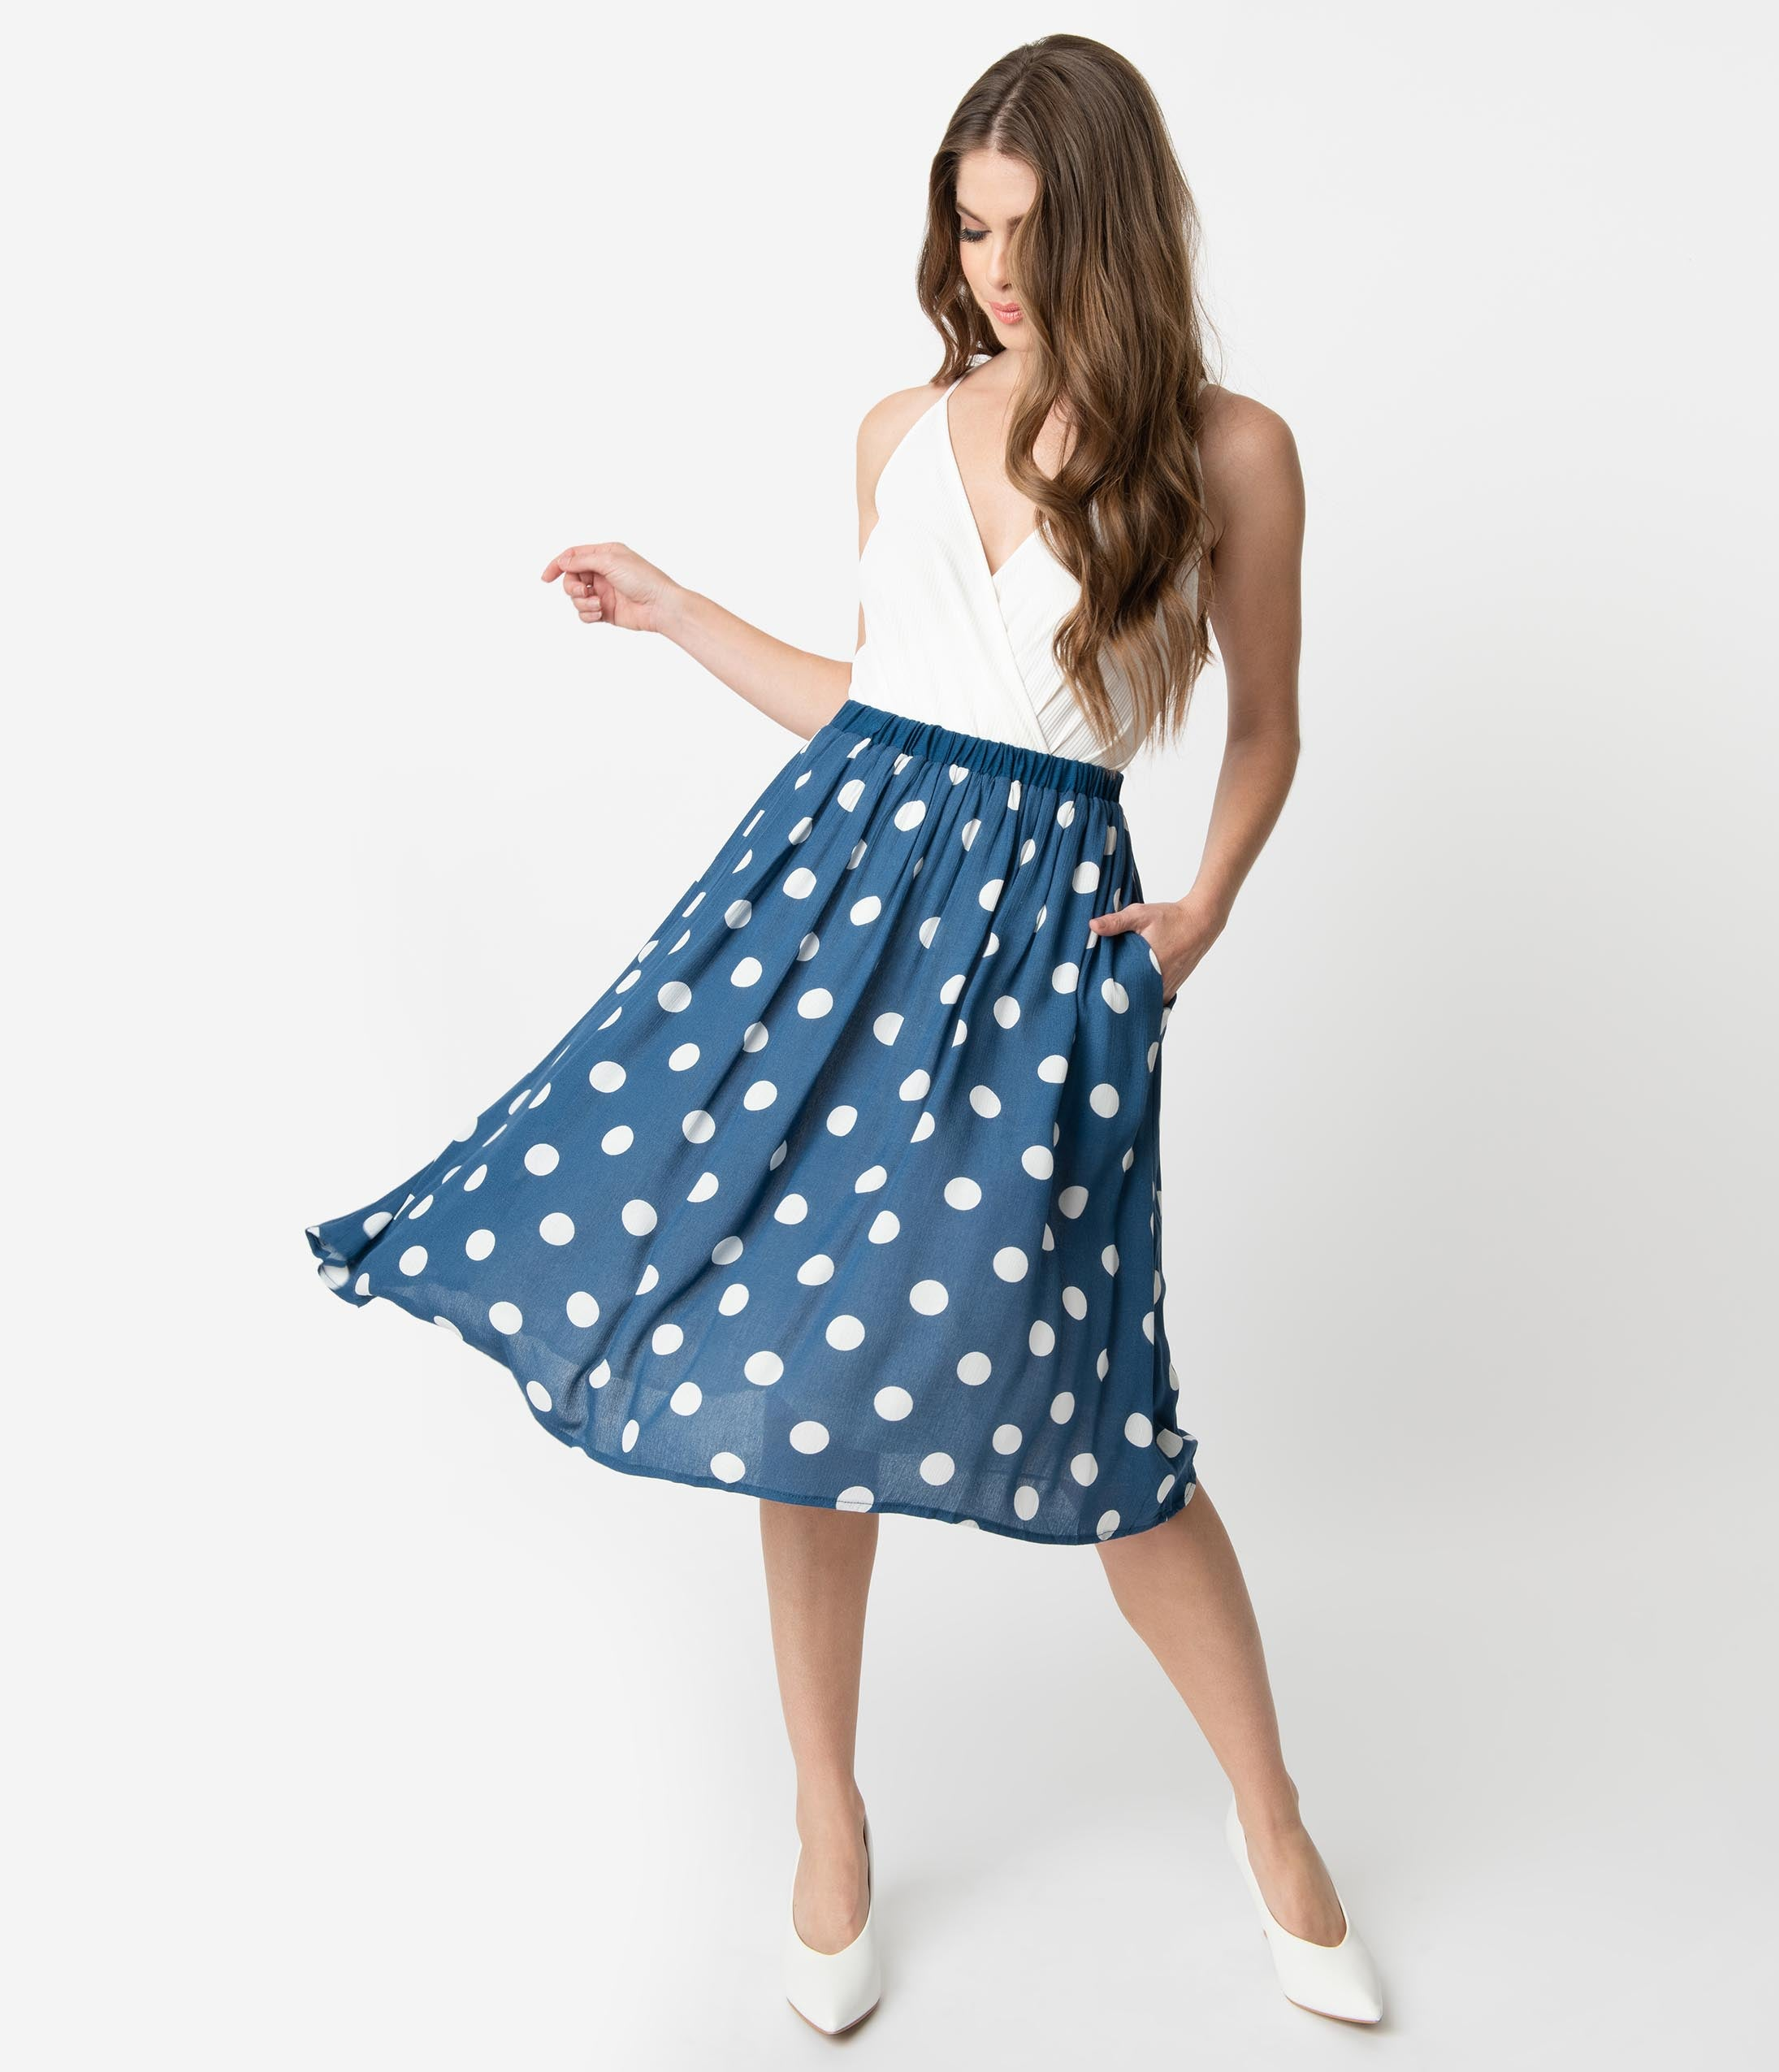 1940s Clothing Retro Style Blue  White Polka Dot Gathered Swing Skirt $46.00 AT vintagedancer.com